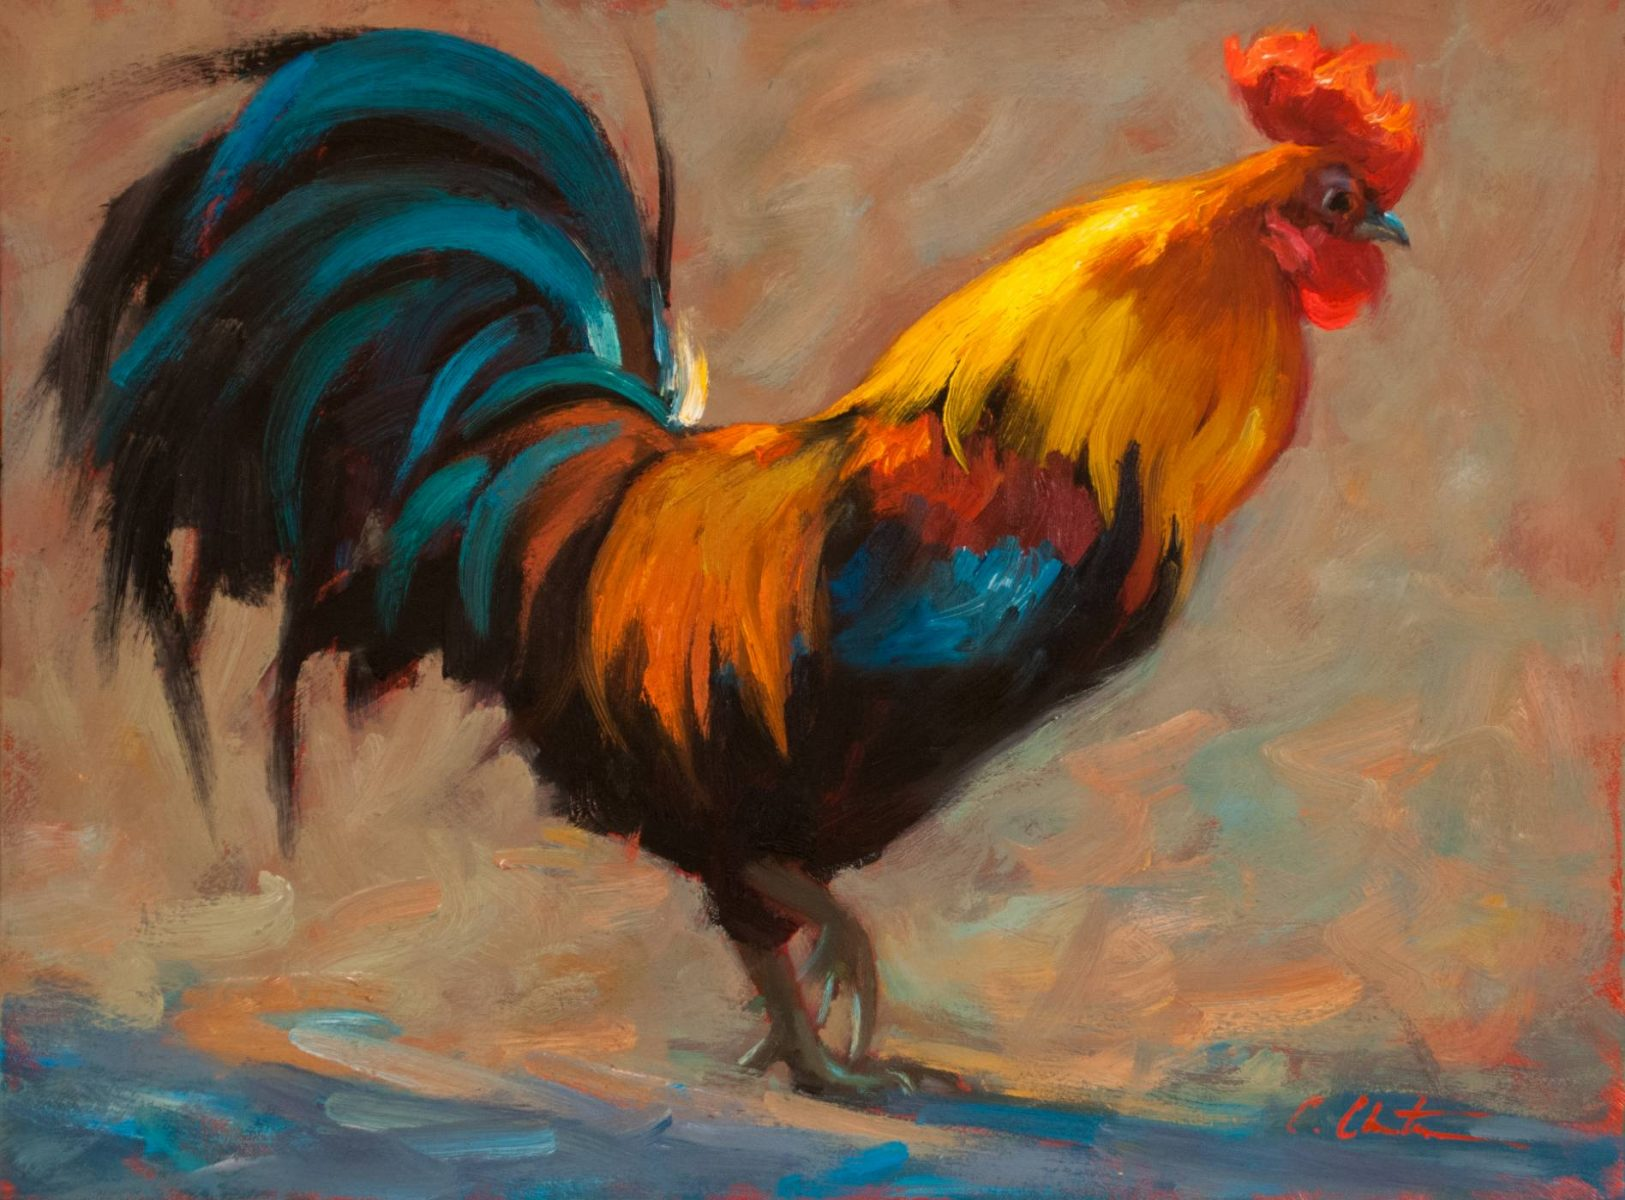 painting of a rooster by Texas artist Cheri Christensen